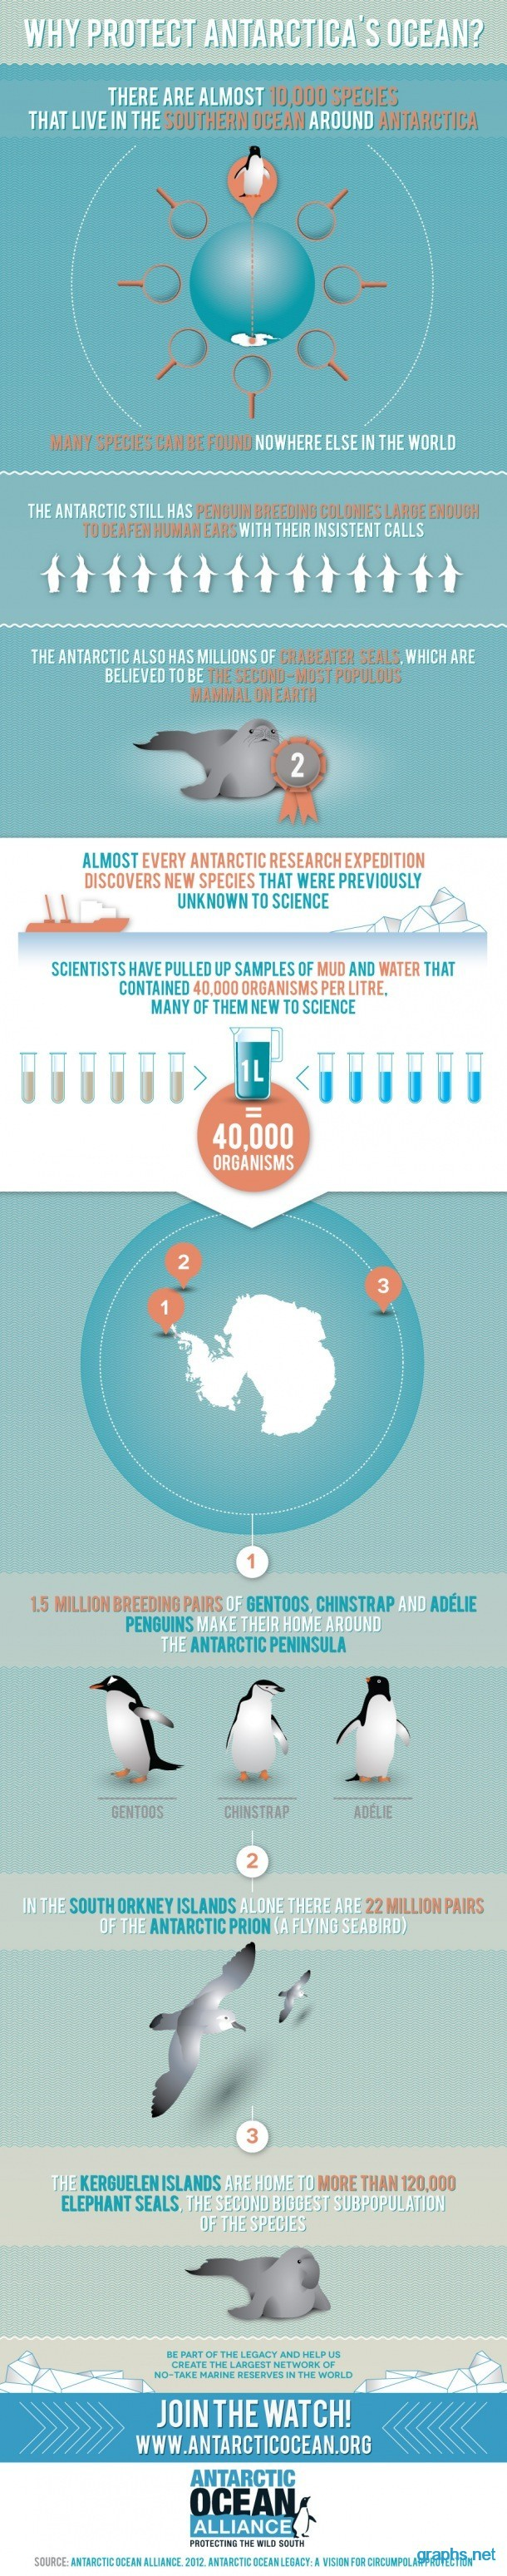 antarctica facts and figures